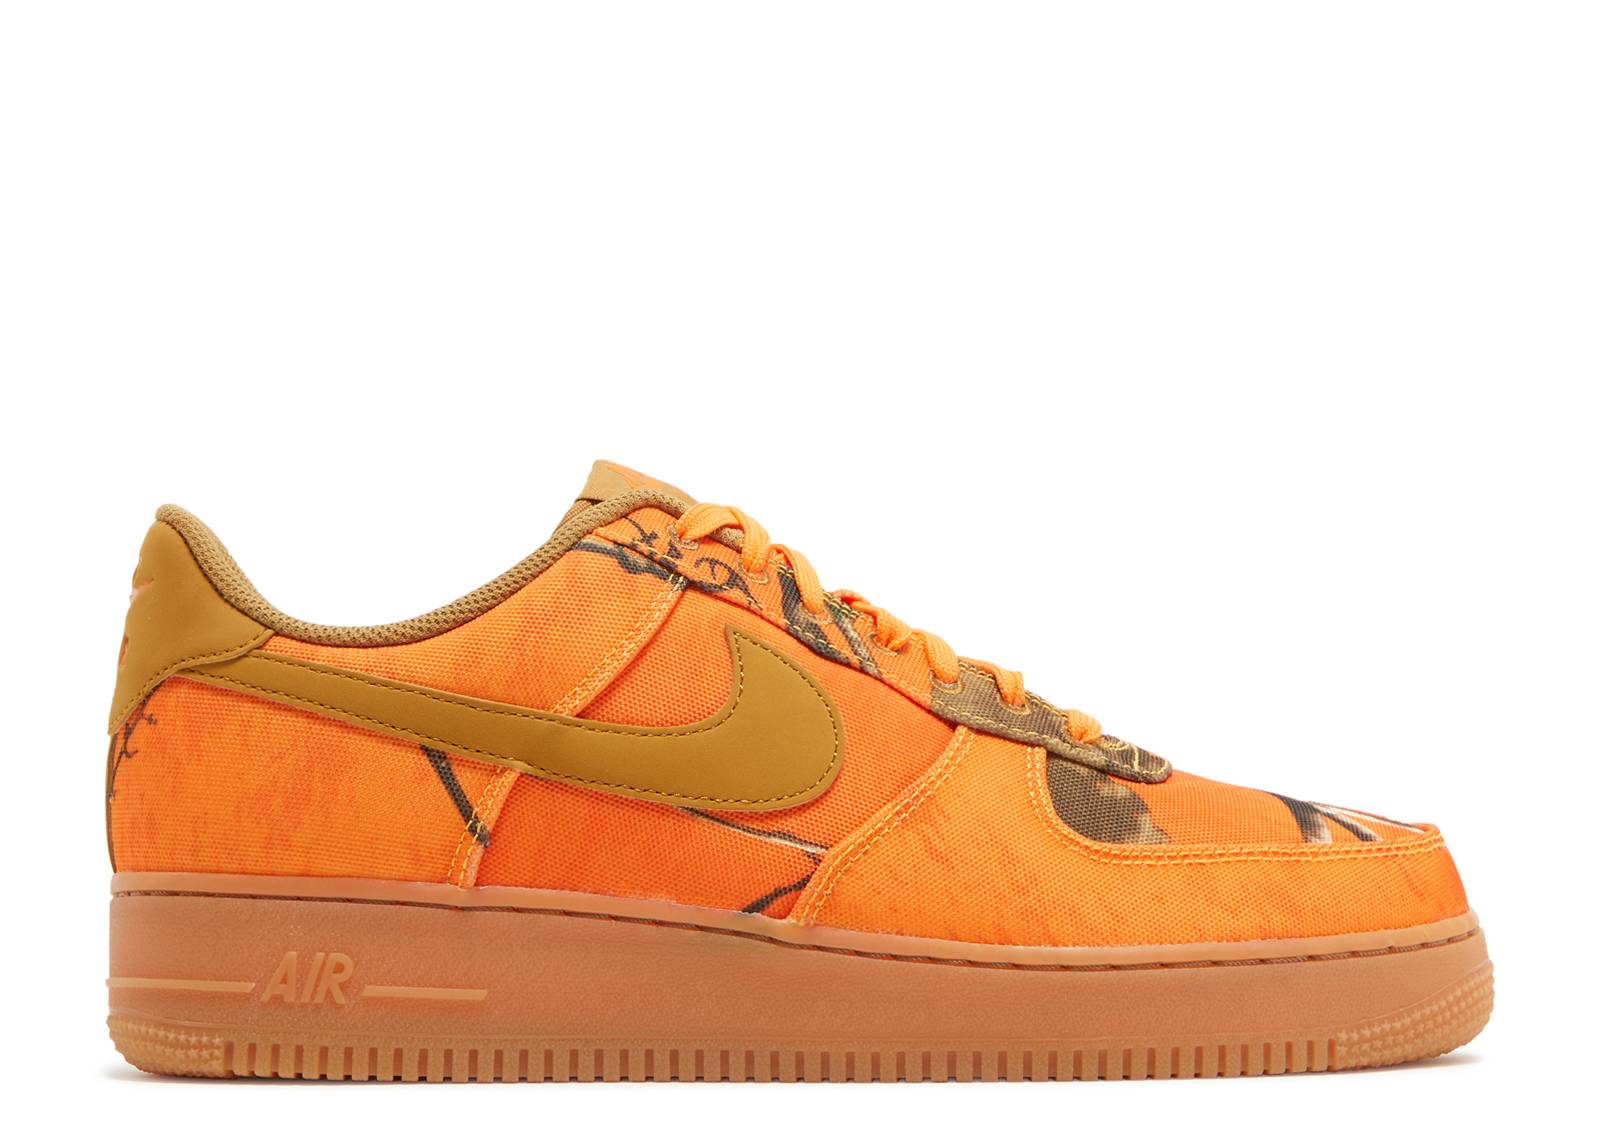 cb0a3e6f Nike Air Force 1 Low